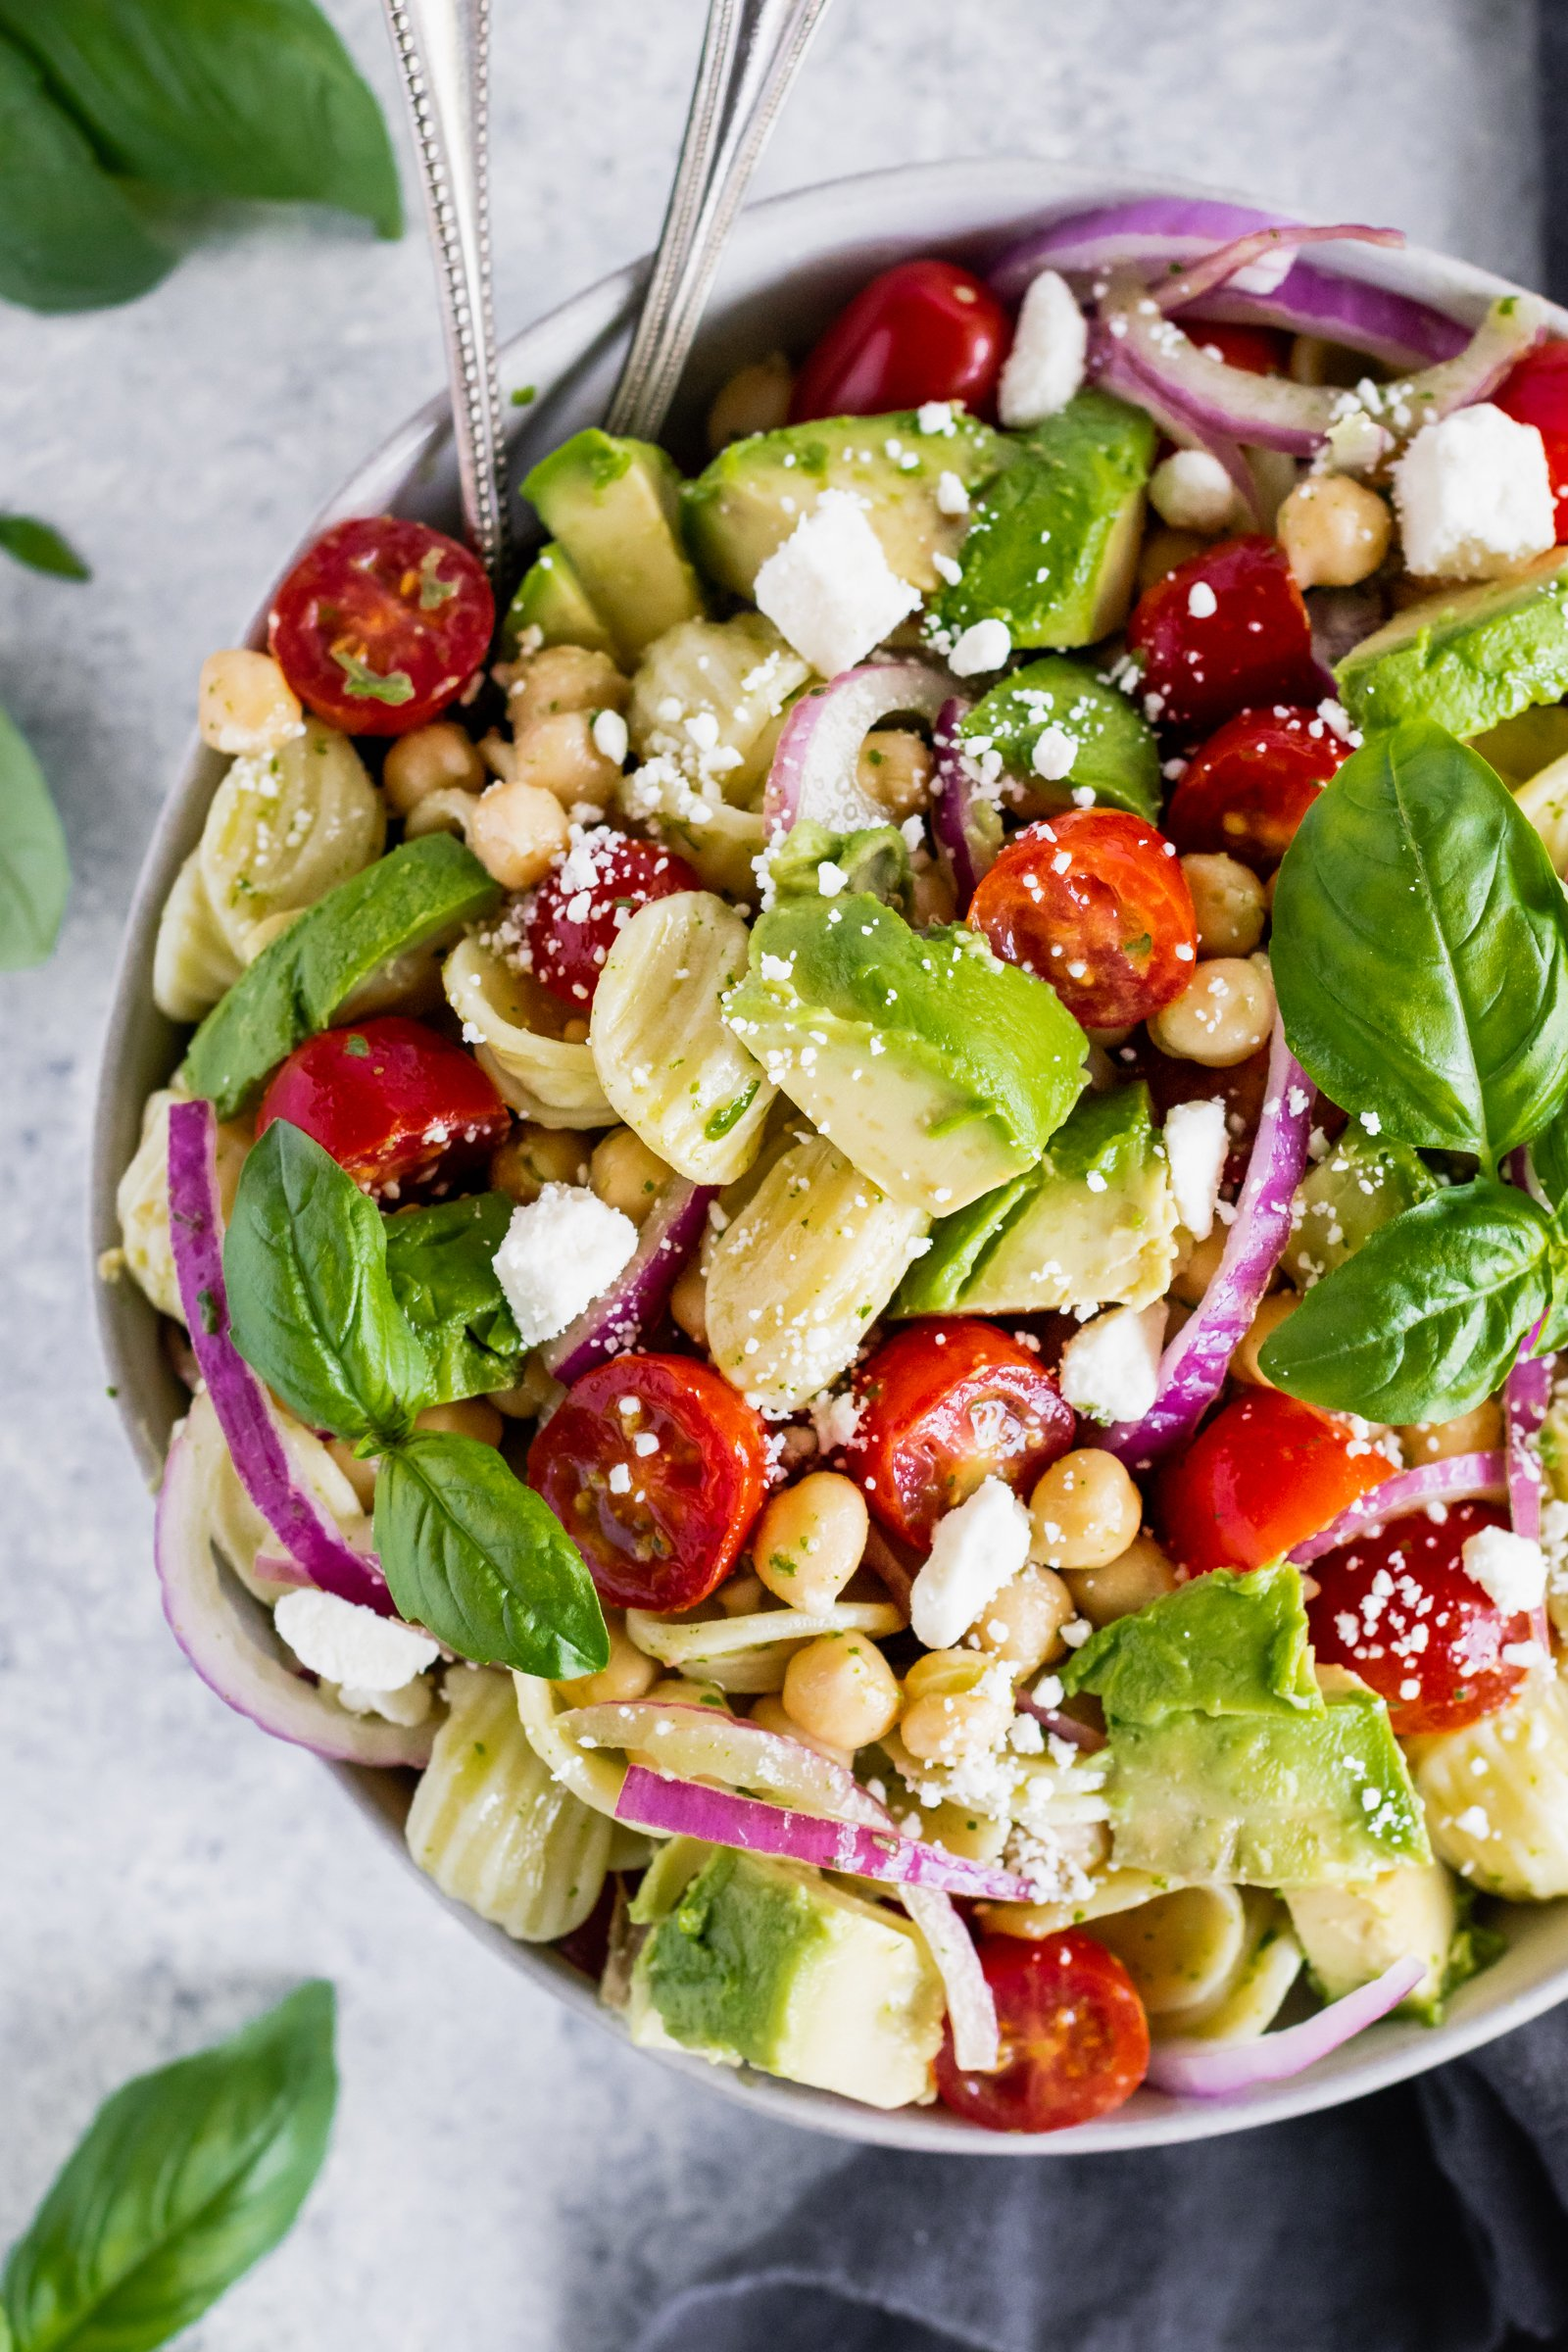 20 minute vegetarian avocado chickpea pasta salad with mediterranean flavors and a bold lemon basil dressing. Perfect to pack for lunch!